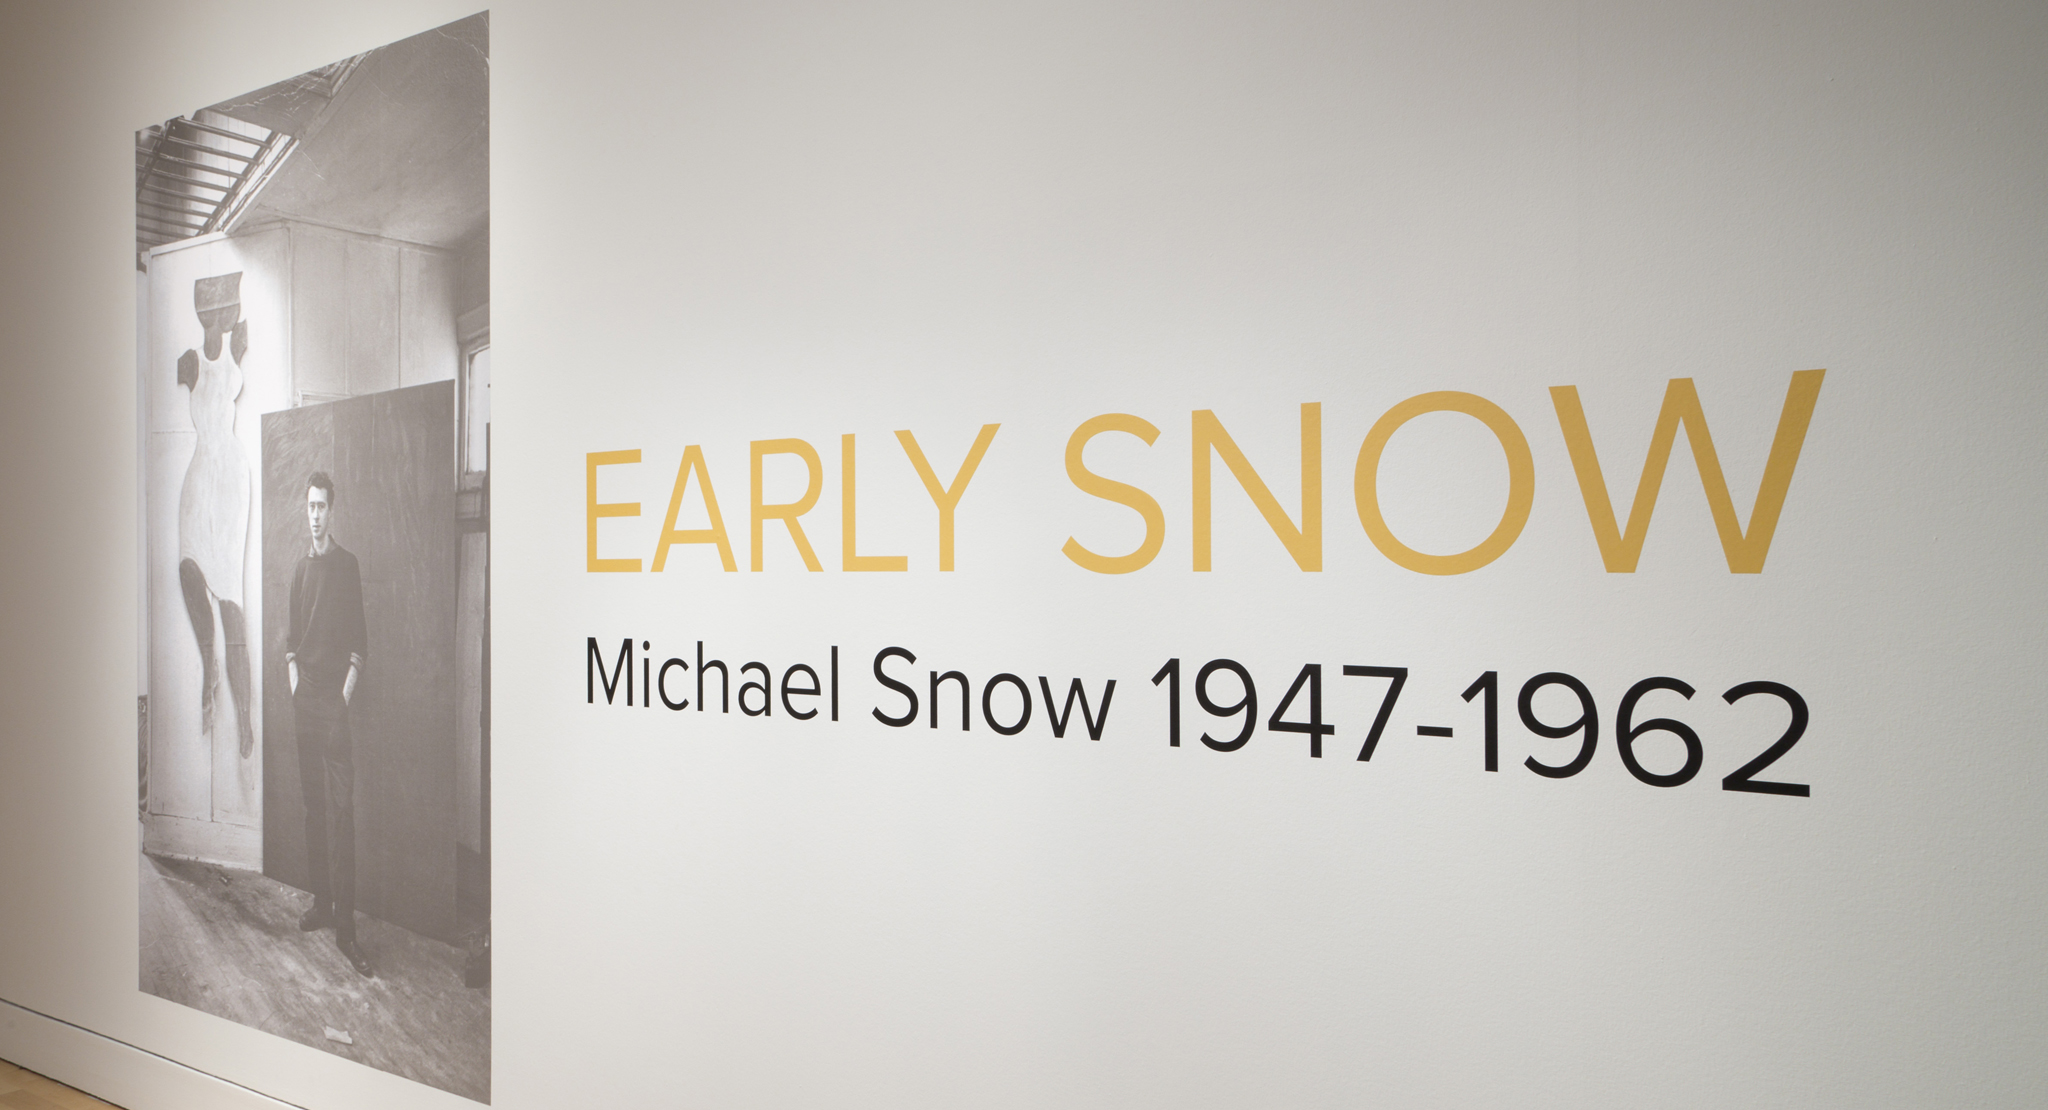 Snow in April: This Month in Michael Snow's History